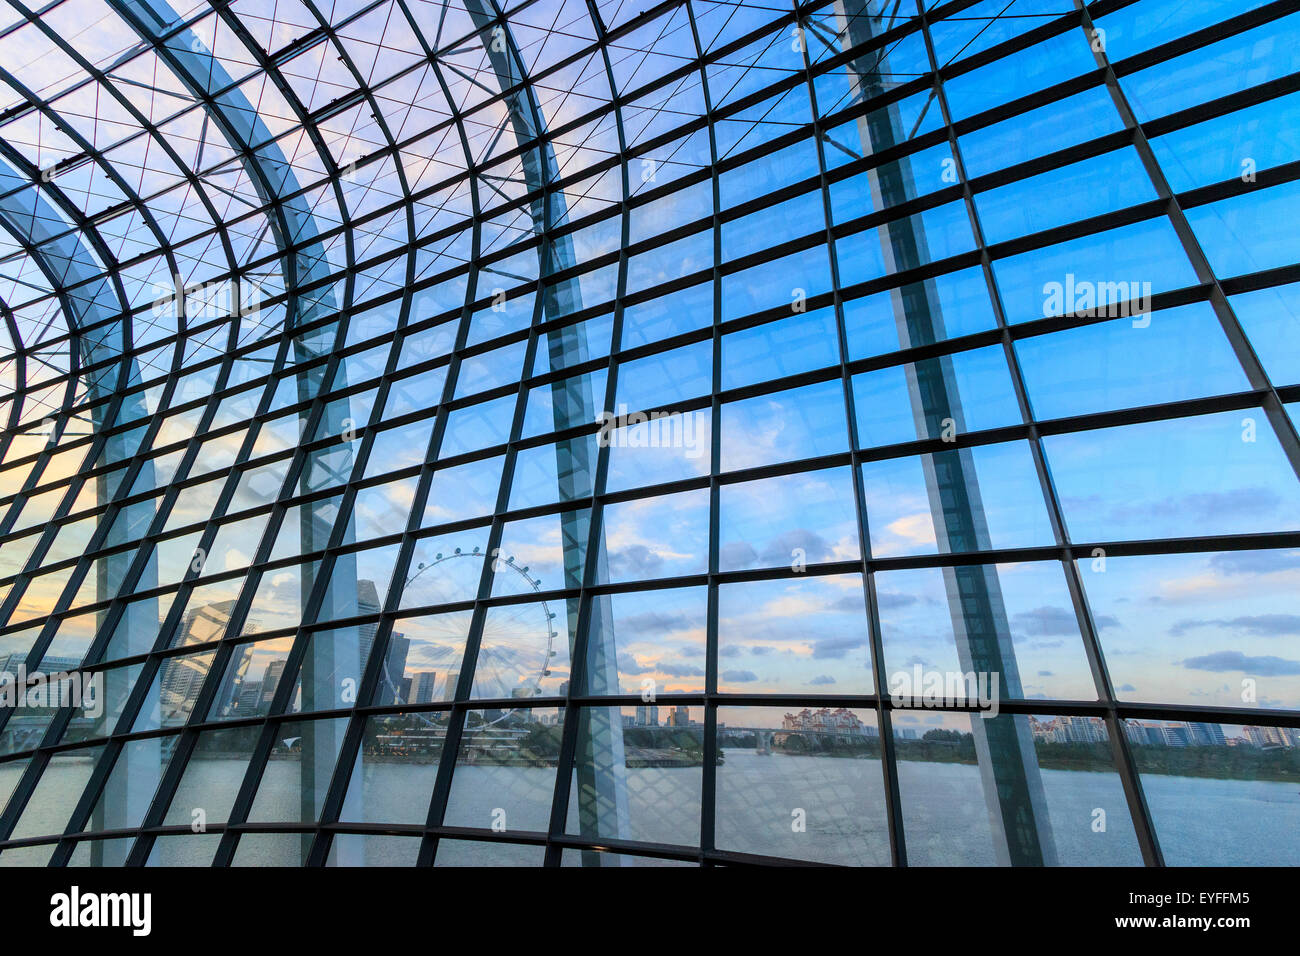 View of Singapore skyline by day from the Mediterranean climate Flower Dome garden of Gardens by the Bay - Stock Image